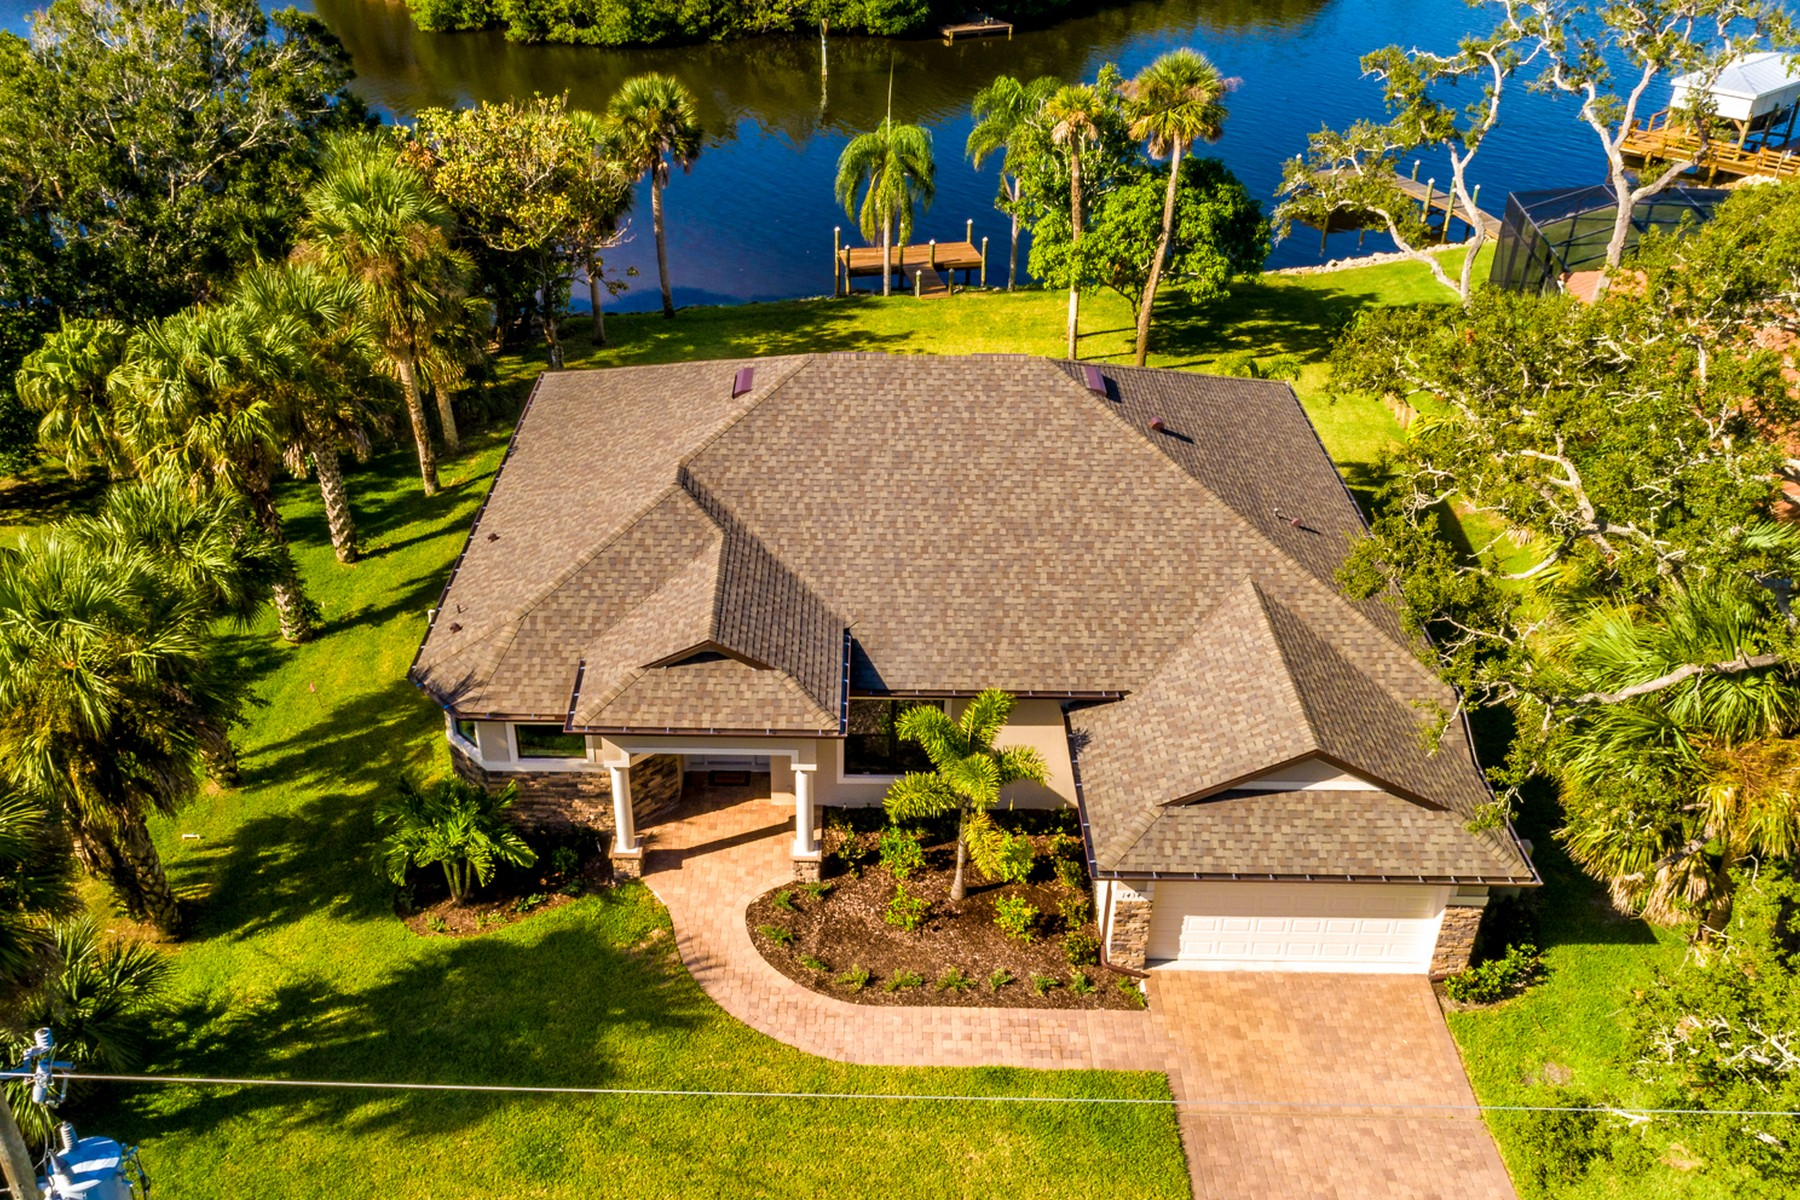 Single Family Home for Sale at Brand New Waterfront Home in Palm Bay Point 1434 Herndon Circle NE Palm Bay, Florida 32905 United States